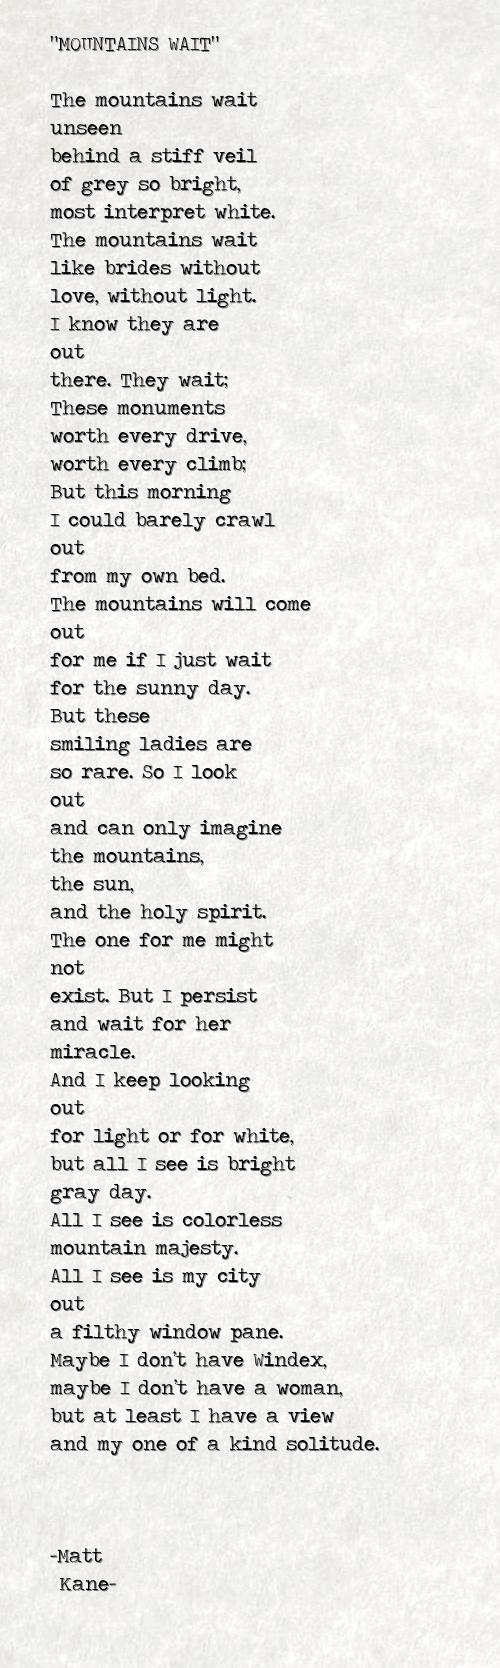 MOUNTAINS WAIT - a poem by Matt Kane